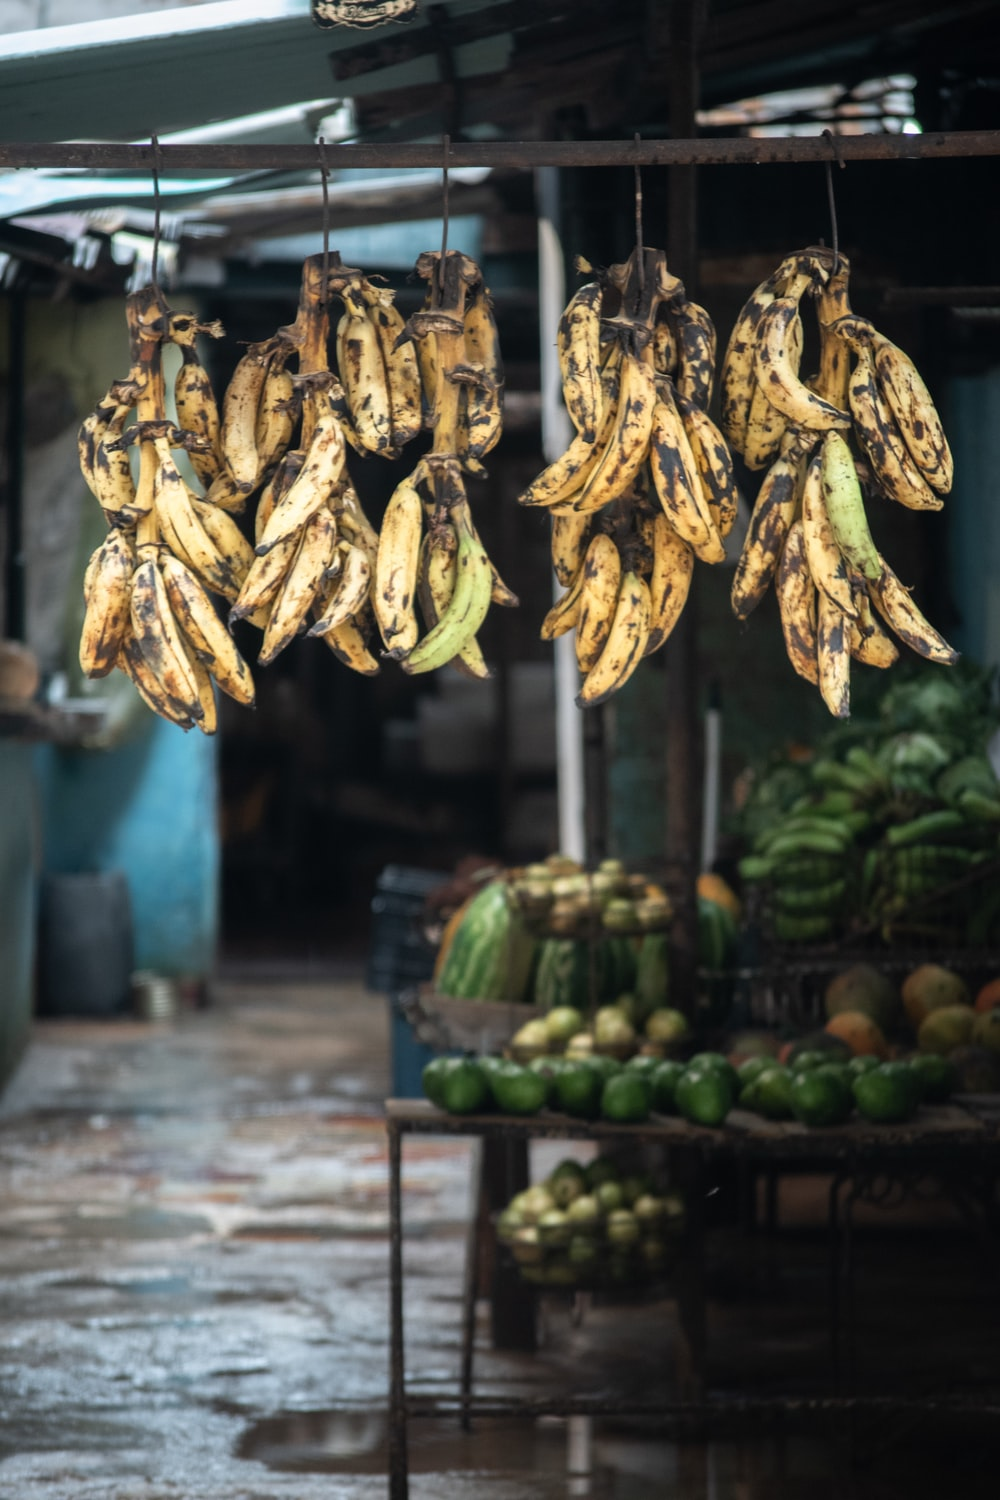 bunch of bananas hanging on canopy